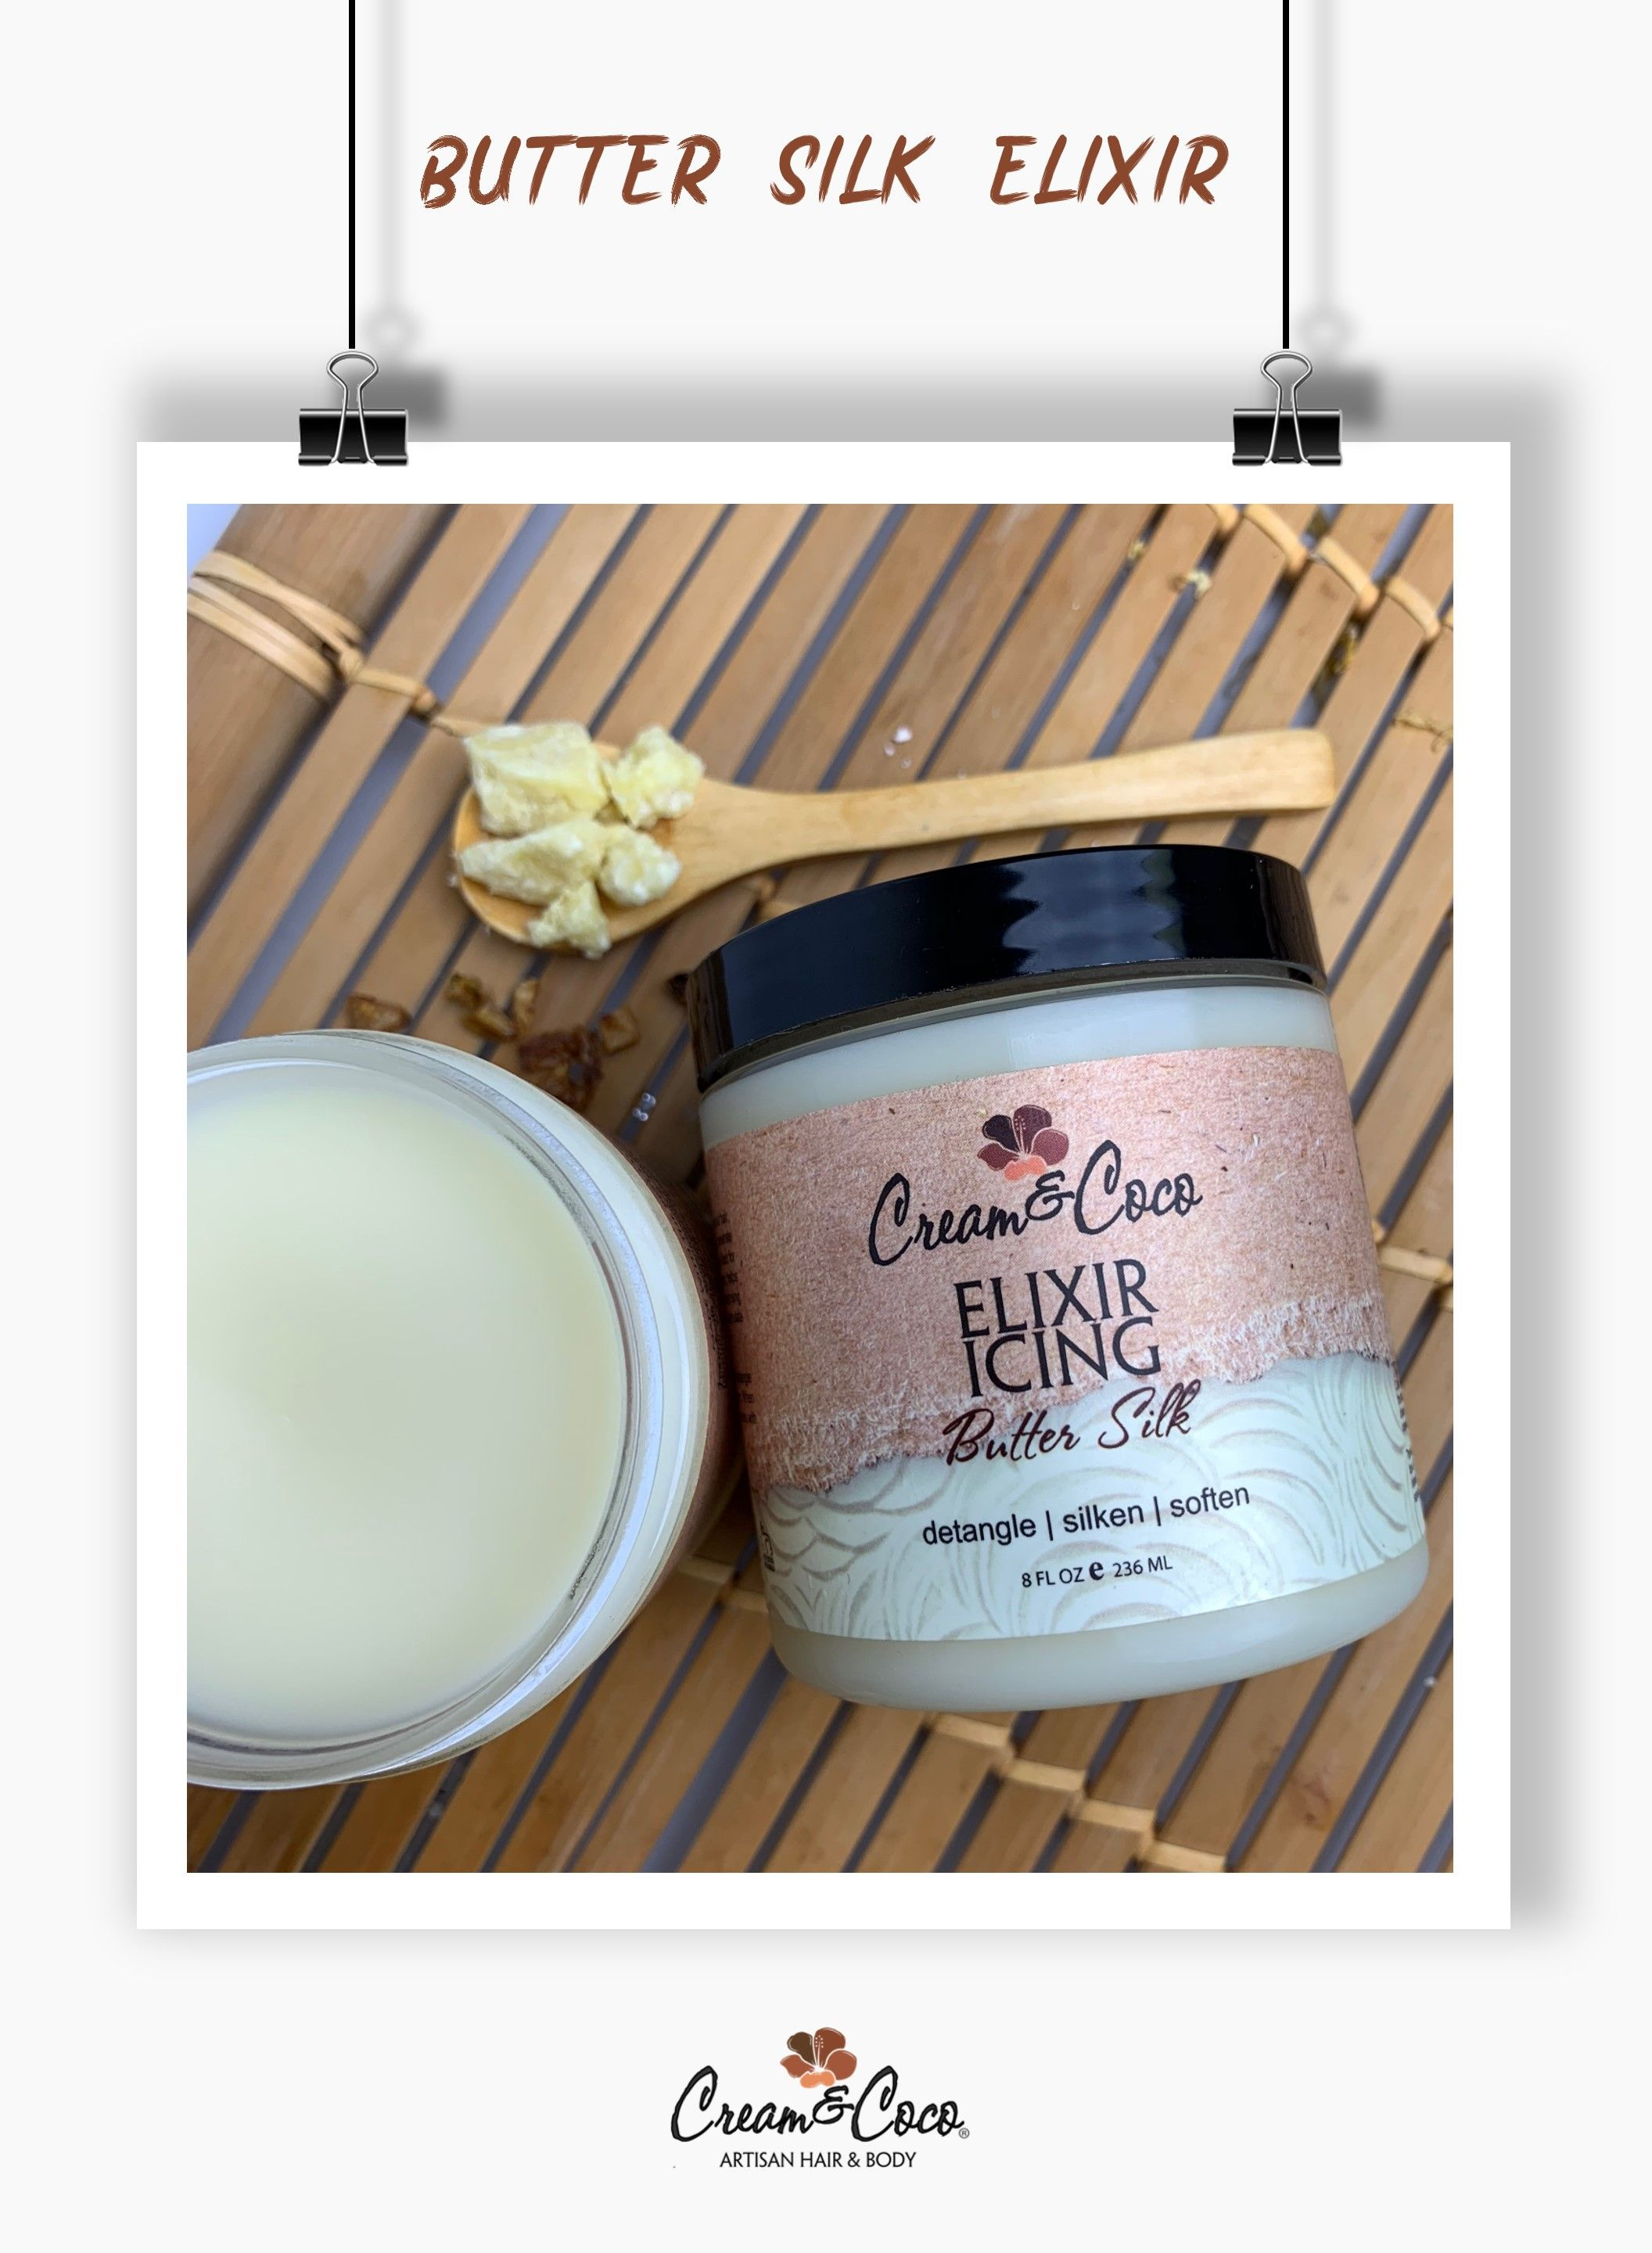 Butter Silk Elixir Butter Silk Elixir. Silkening creamy elixir packed with organic Cocoa Butter that slides across your hair, but rinses cleanly leaving it amazingly soft. Shea Butter & avocado oil can penetrate and nourish the ends of your hair as well as the scalp.